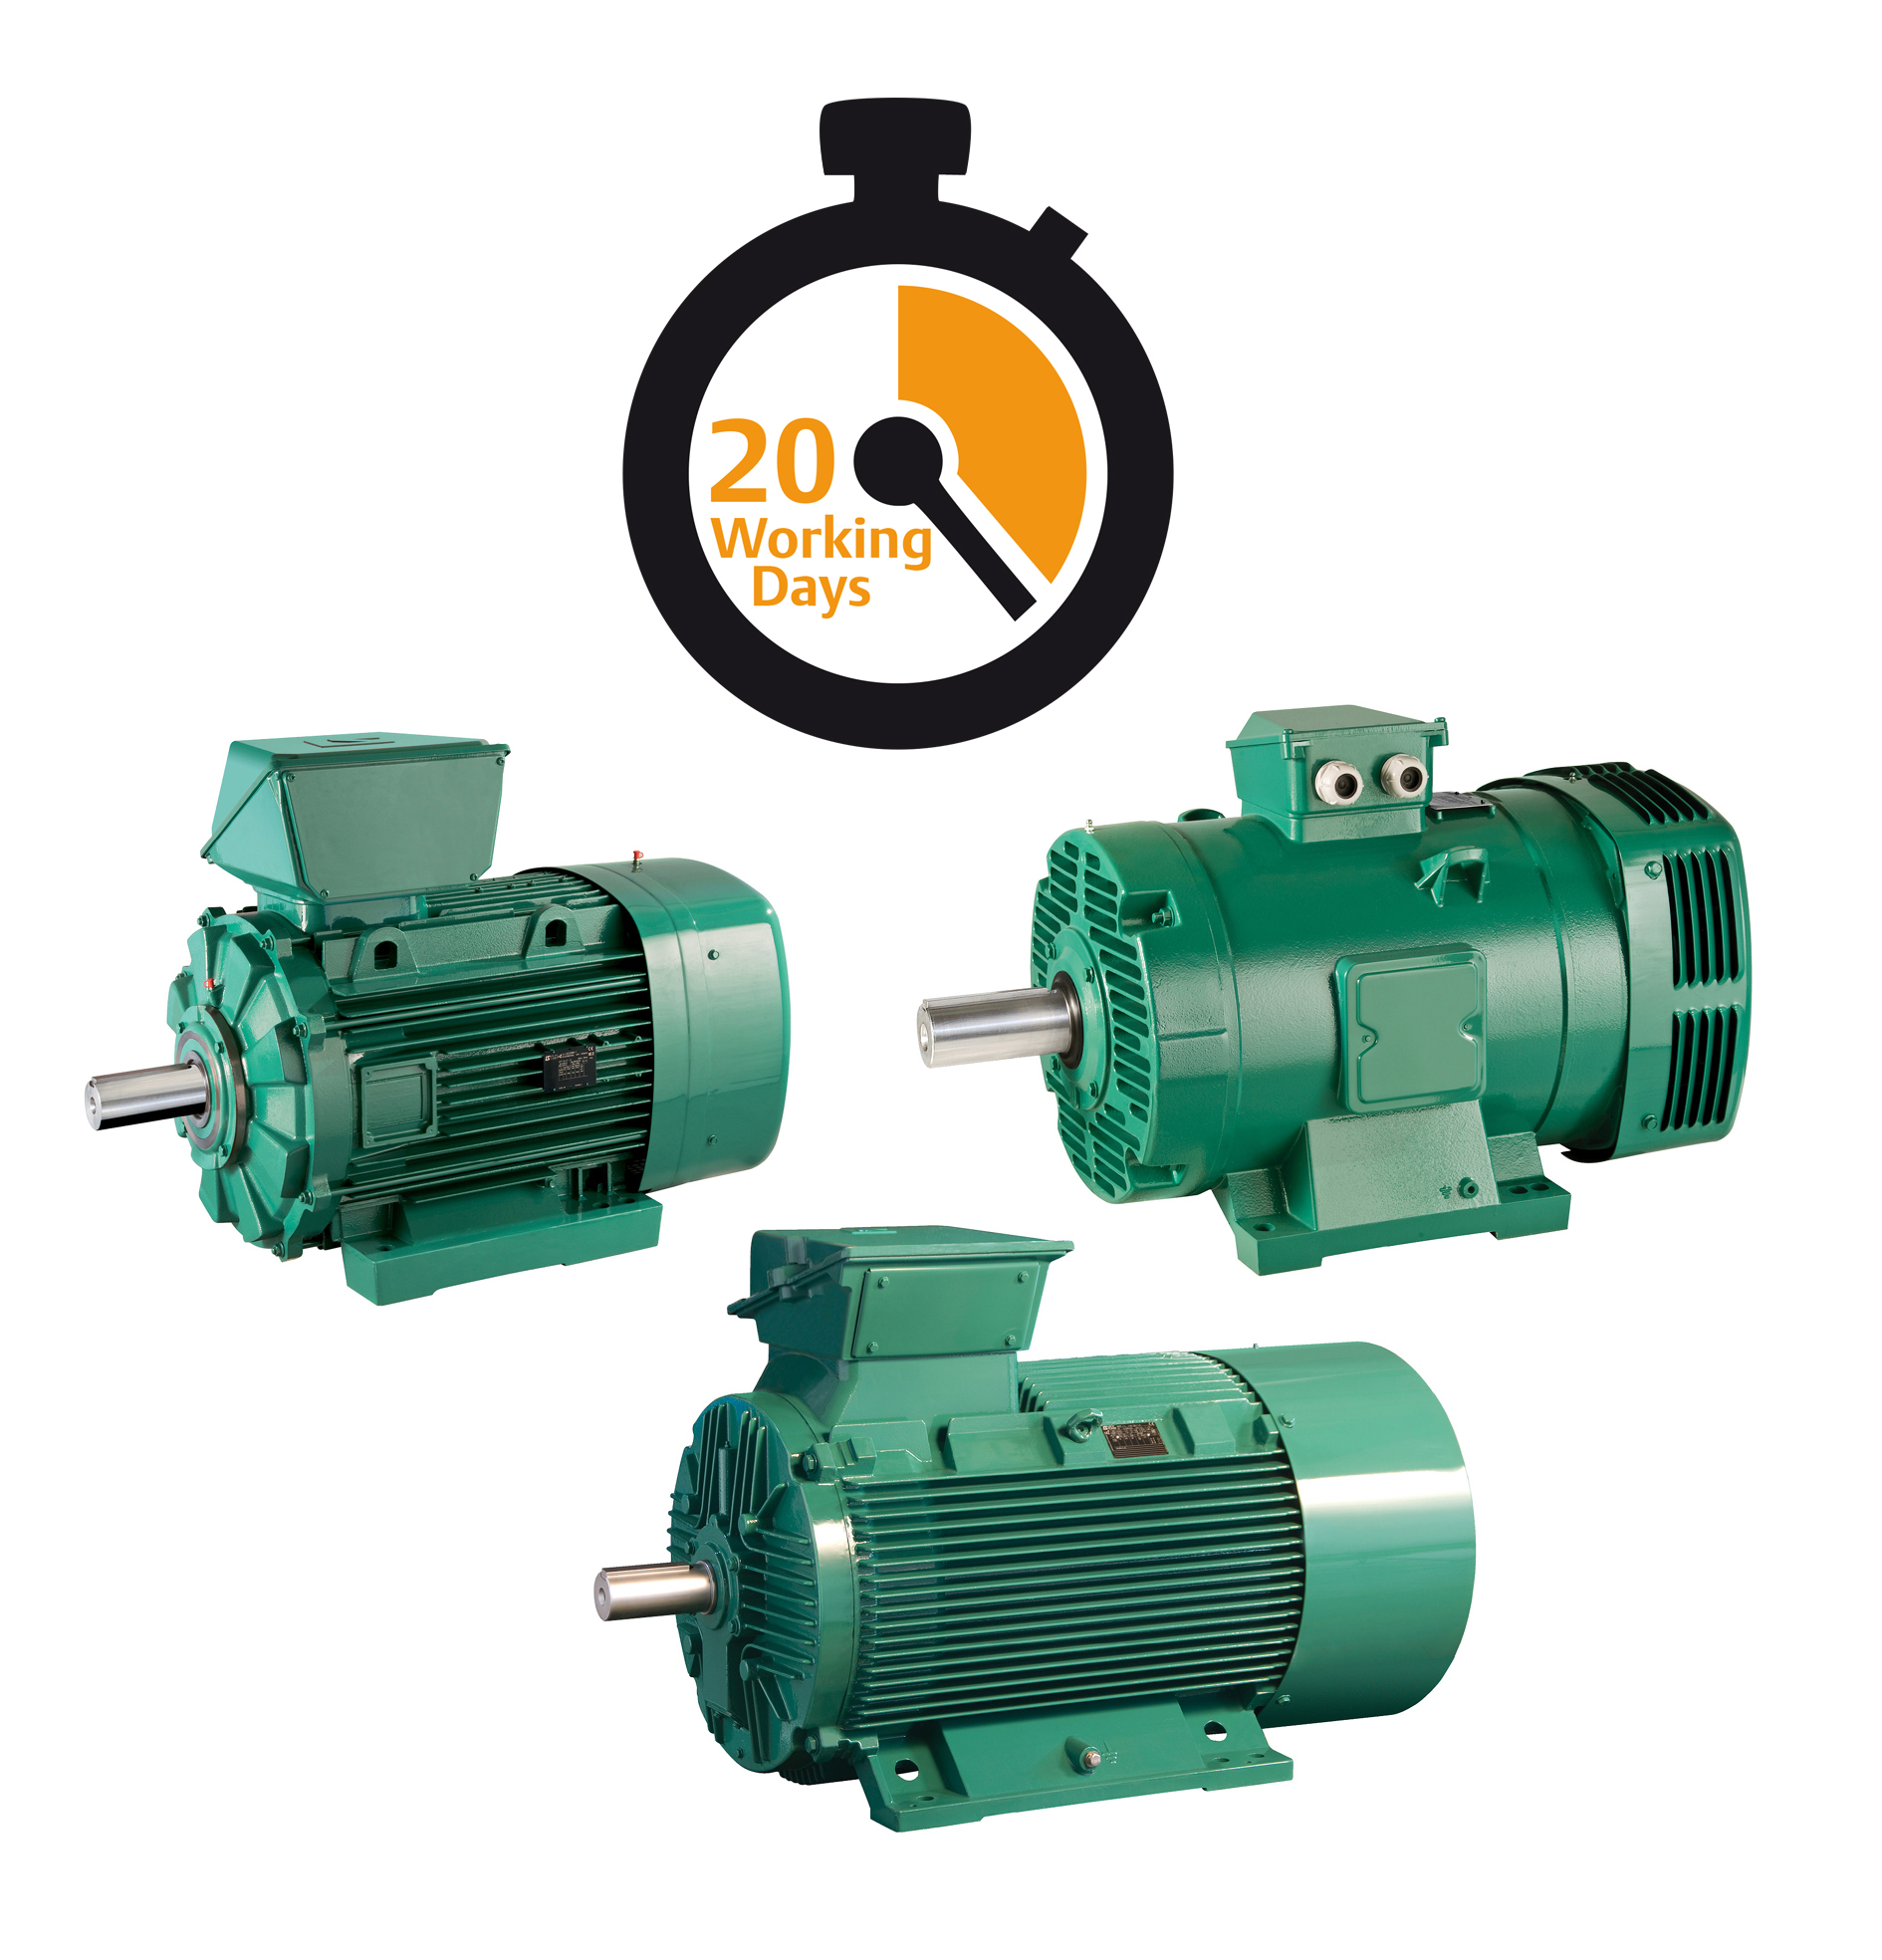 Motors for 20 working days availability